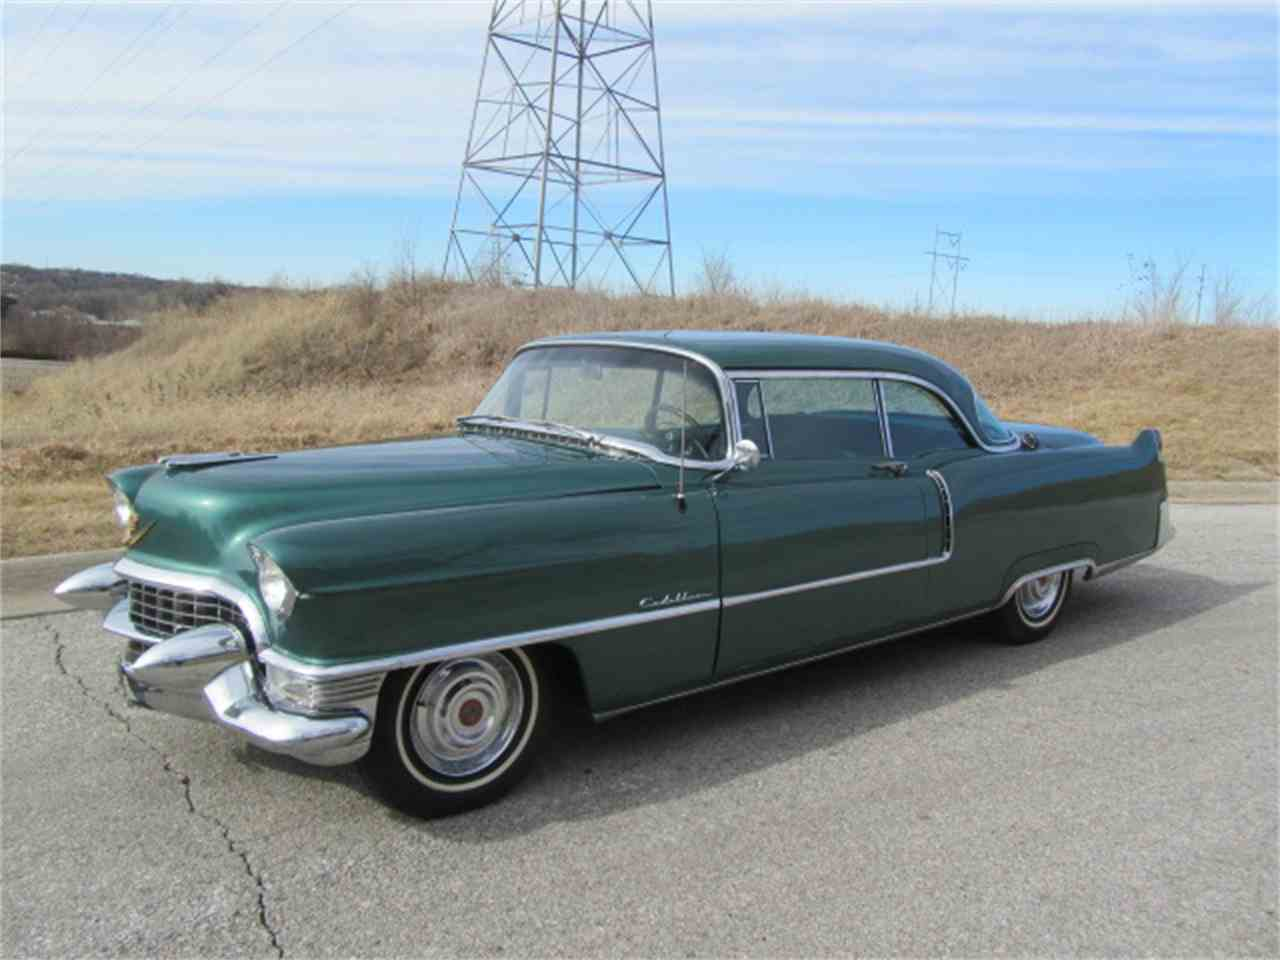 Large Picture of 1955 Cadillac Series 62 Coupe DeVille located in Nebraska - $32,900.00 - KNC6